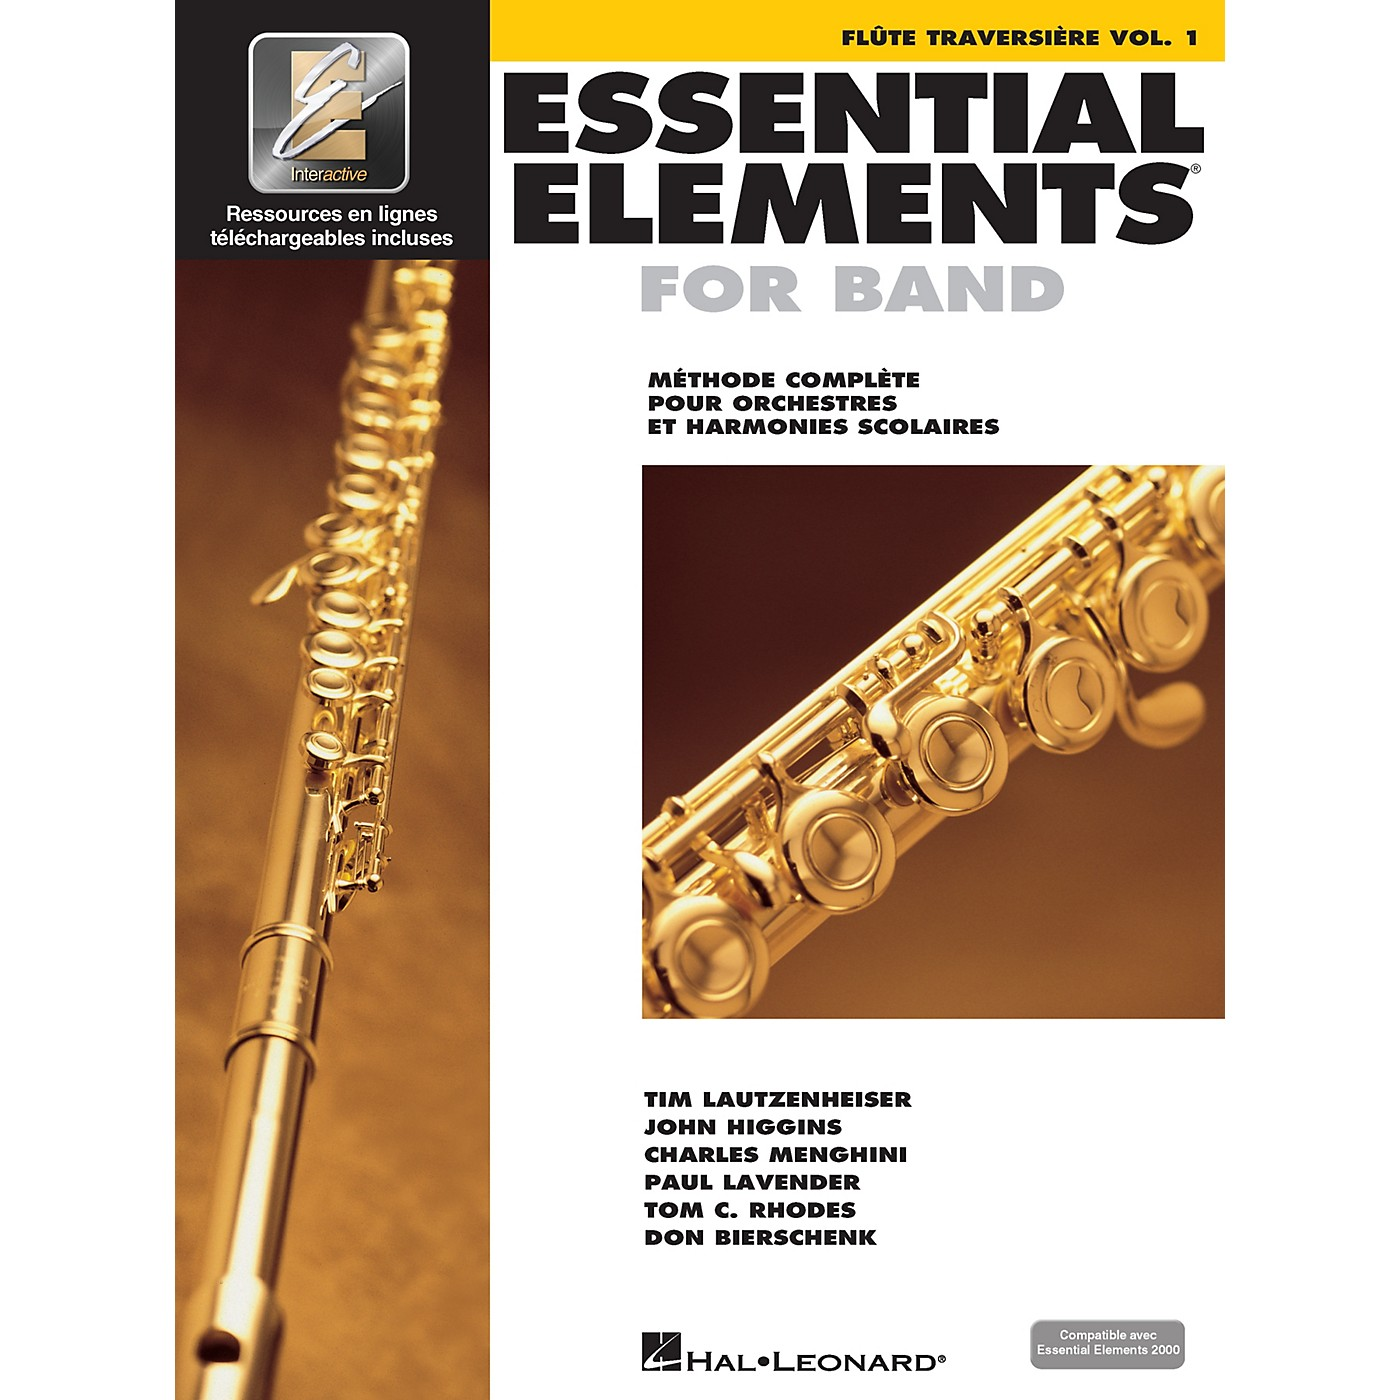 Hal Leonard FRENCH EDITION Essential Elements EE2000 Flute Essential Elements for Band (Book/Online Media) thumbnail